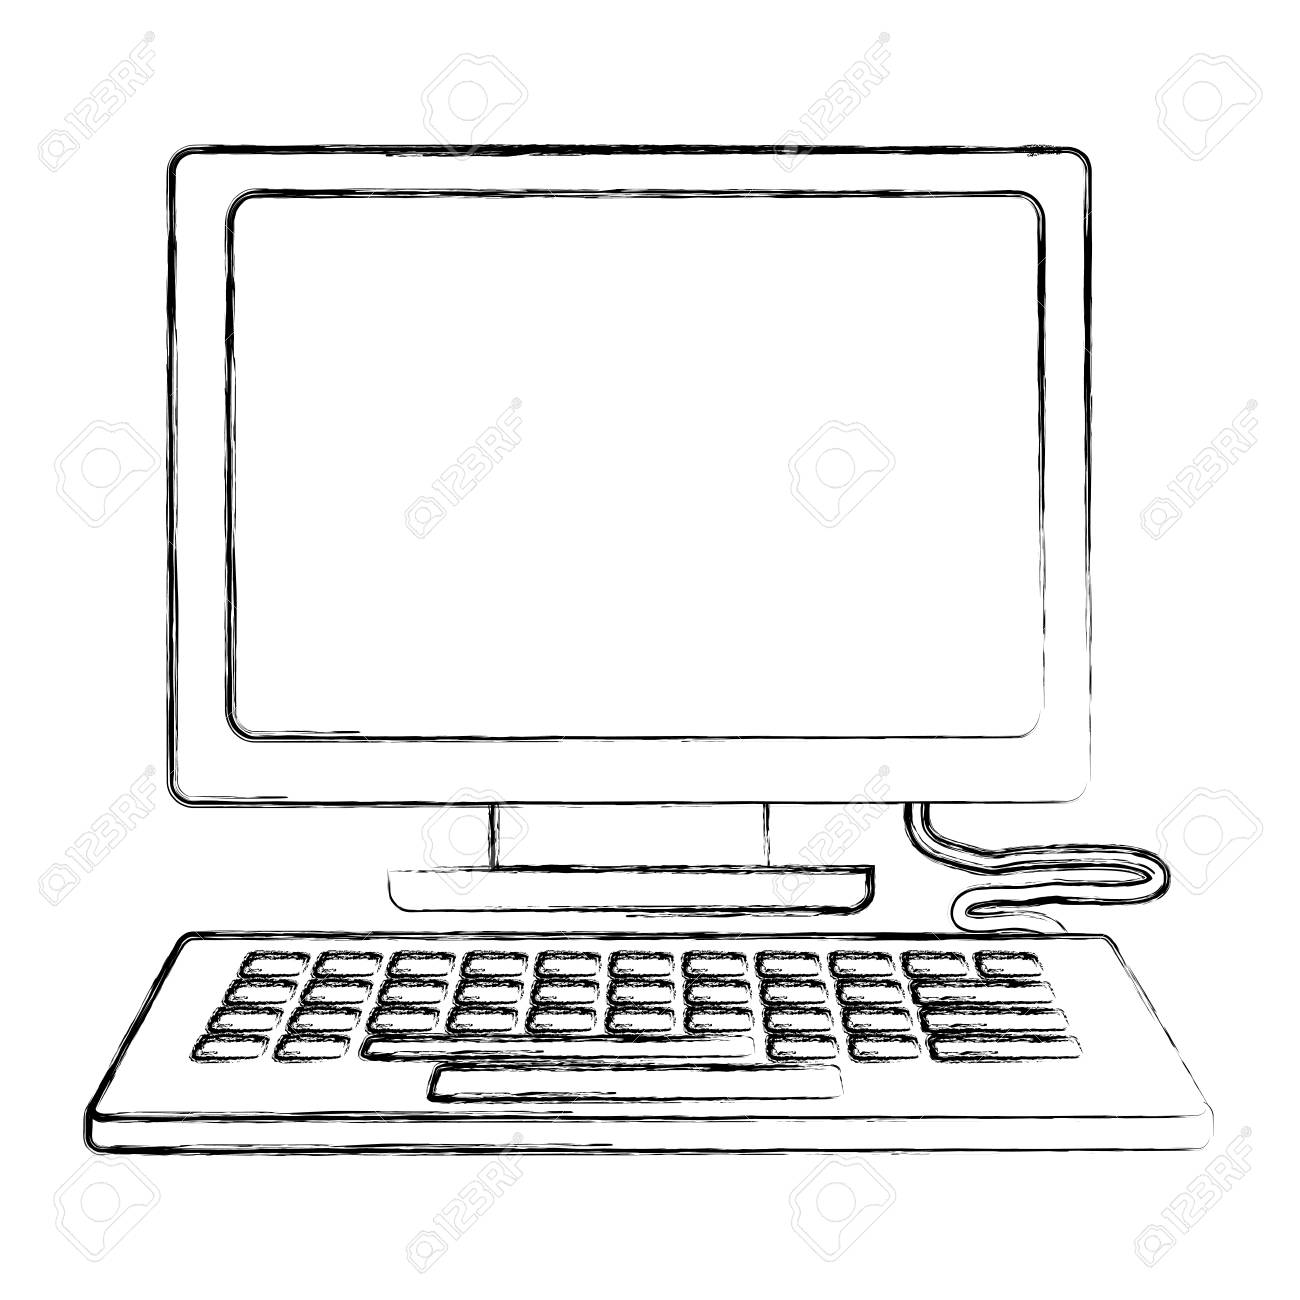 Computer Keyboard Device Technology Digital Vector Illustration Royalty Free Cliparts Vectors And Stock Illustration Image 109952622